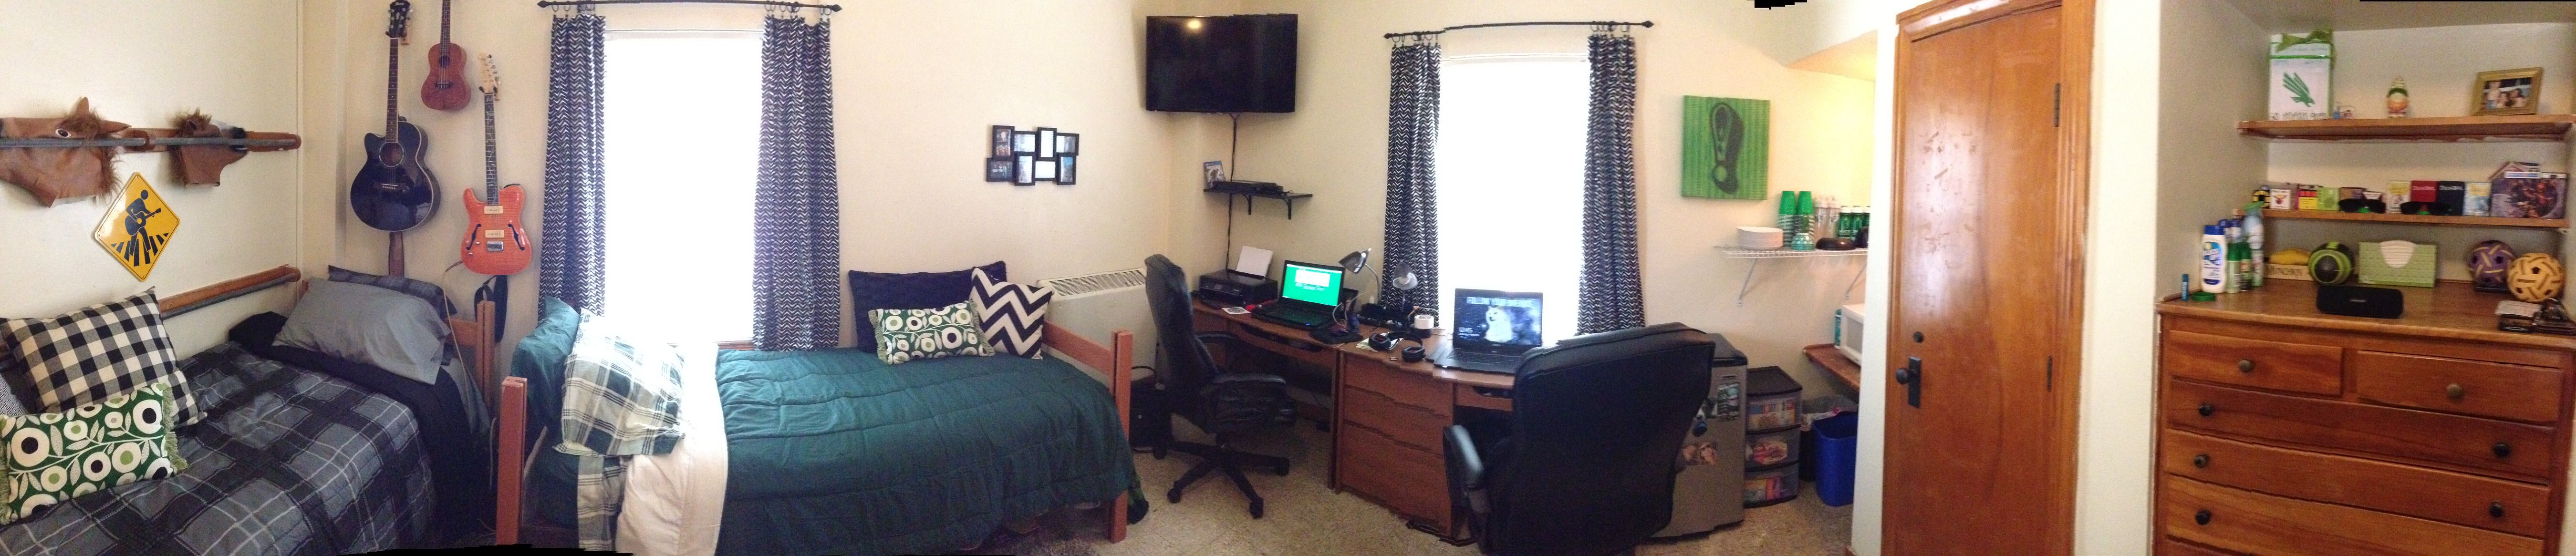 Making A Dorm Room A Home At Unt S Bruce Hall Is A Challenge But